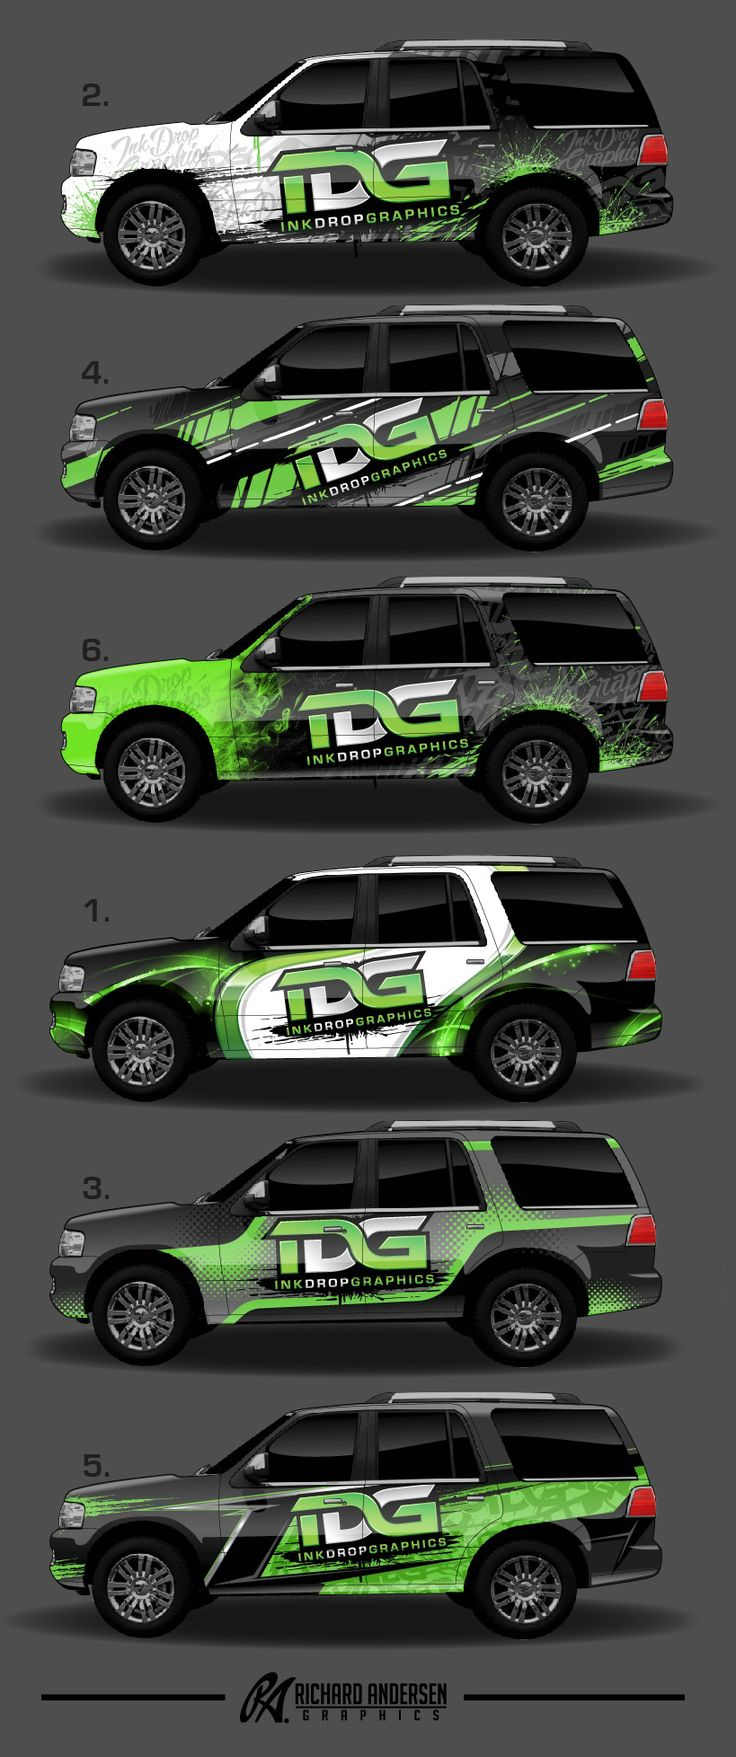 Car stickers advertising - Wrap Design By Richard Andersen Https Ragraphics Carbonmade Com